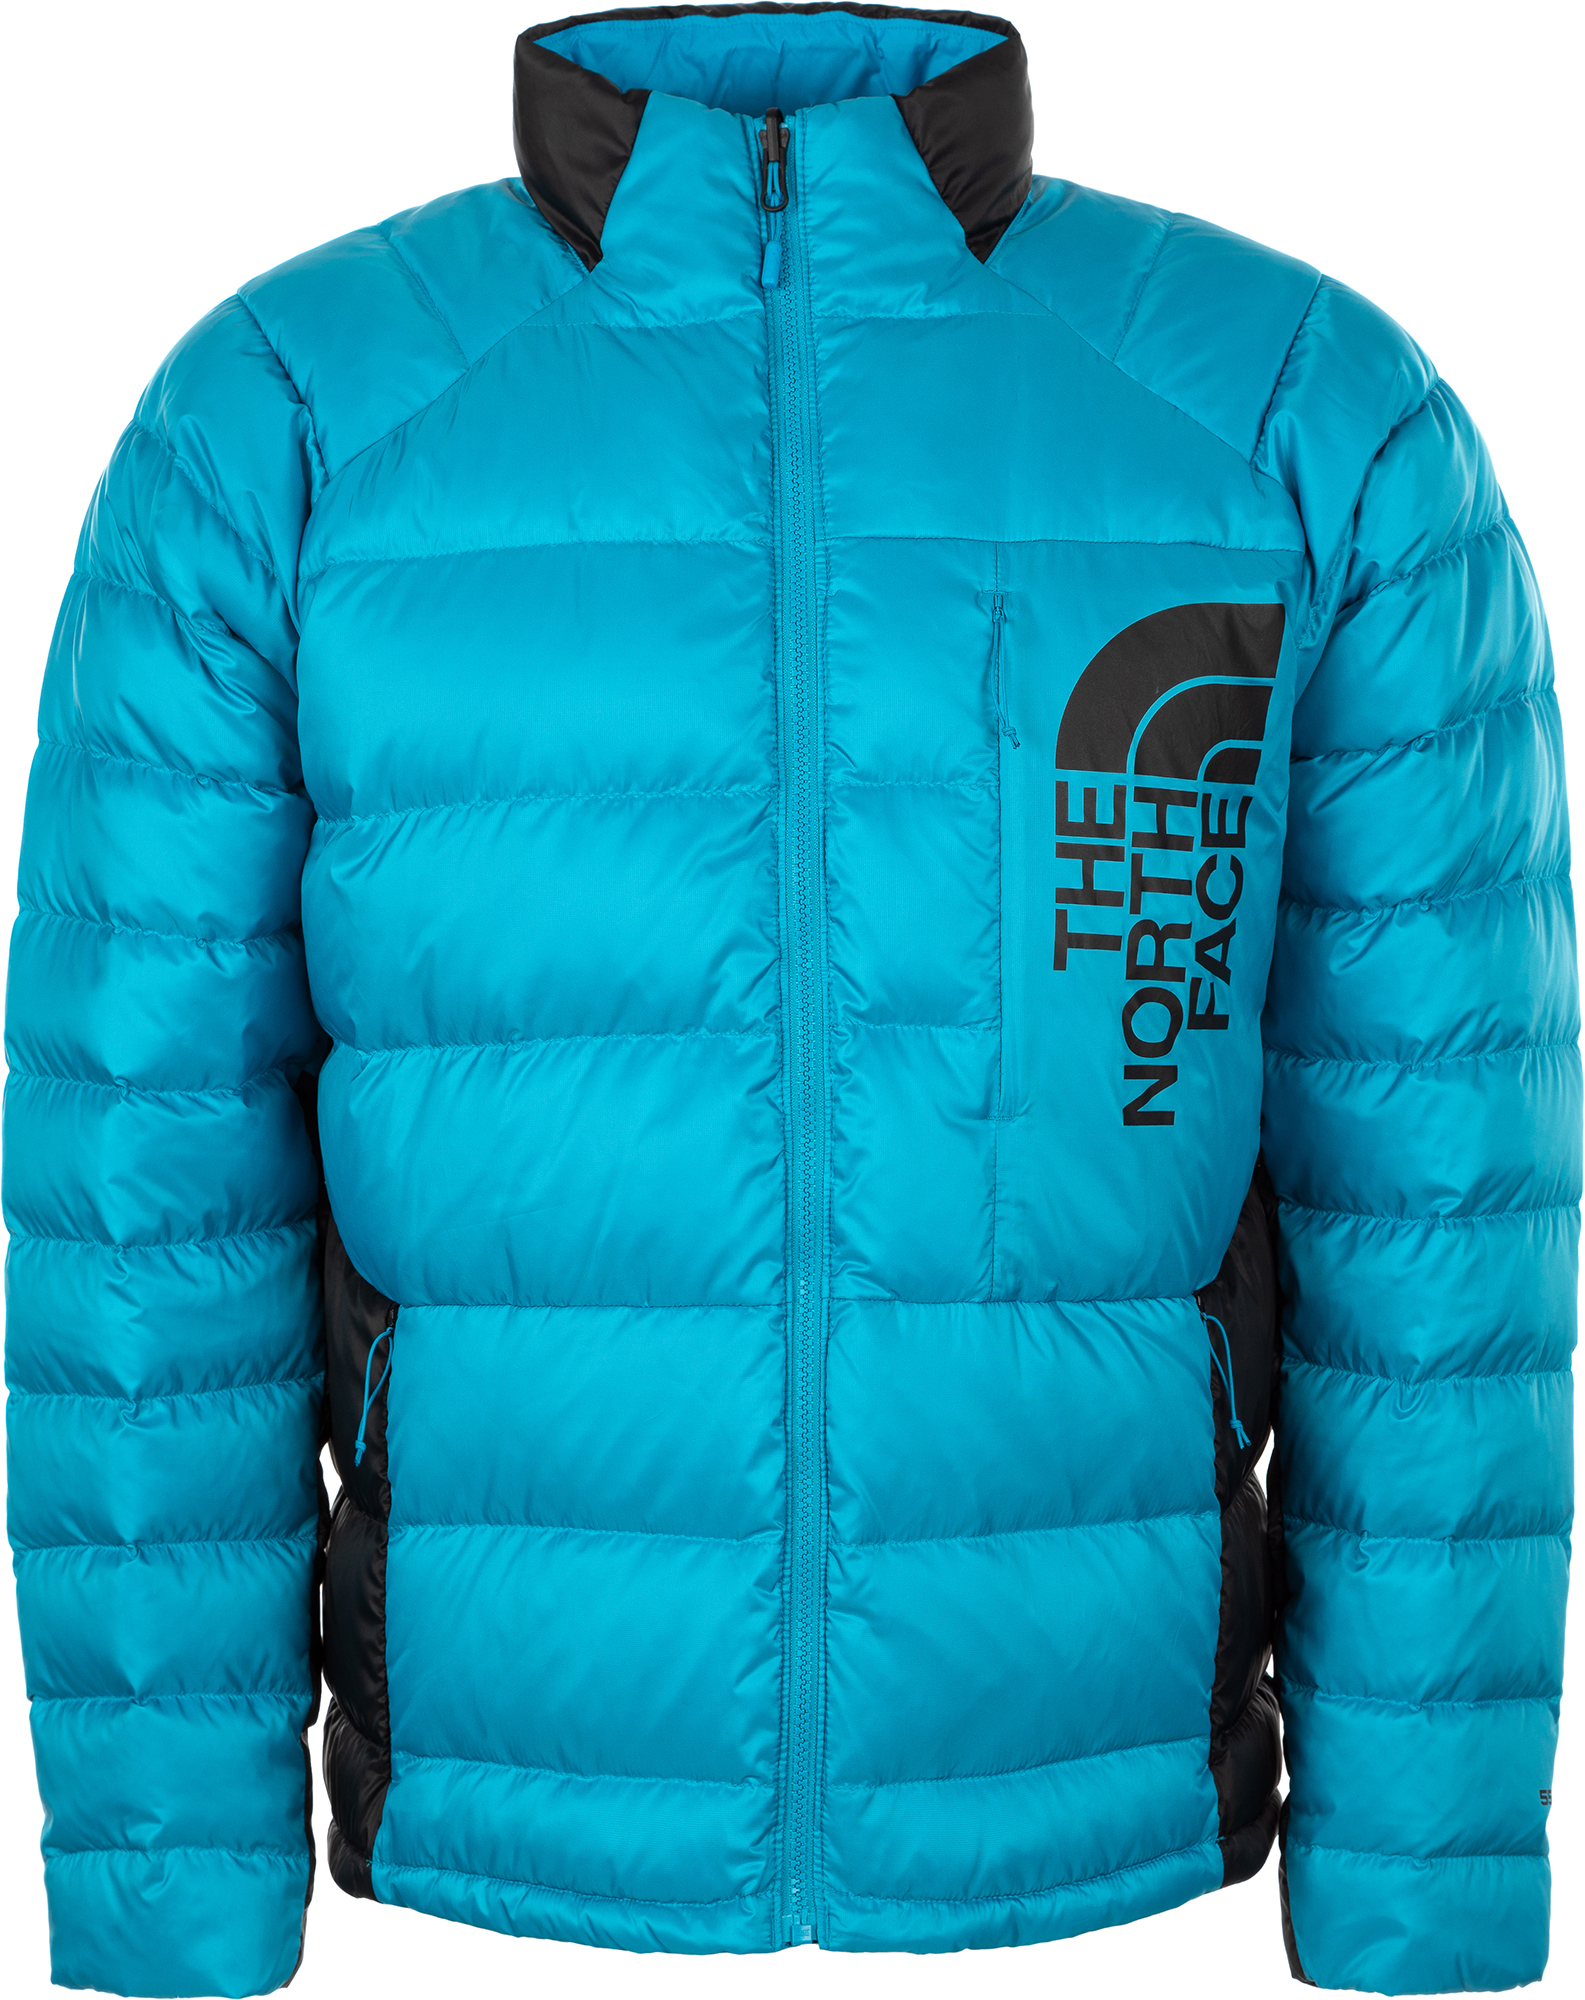 The North Face Пуховик мужской The North Face Peakfrontier II, размер 44-46